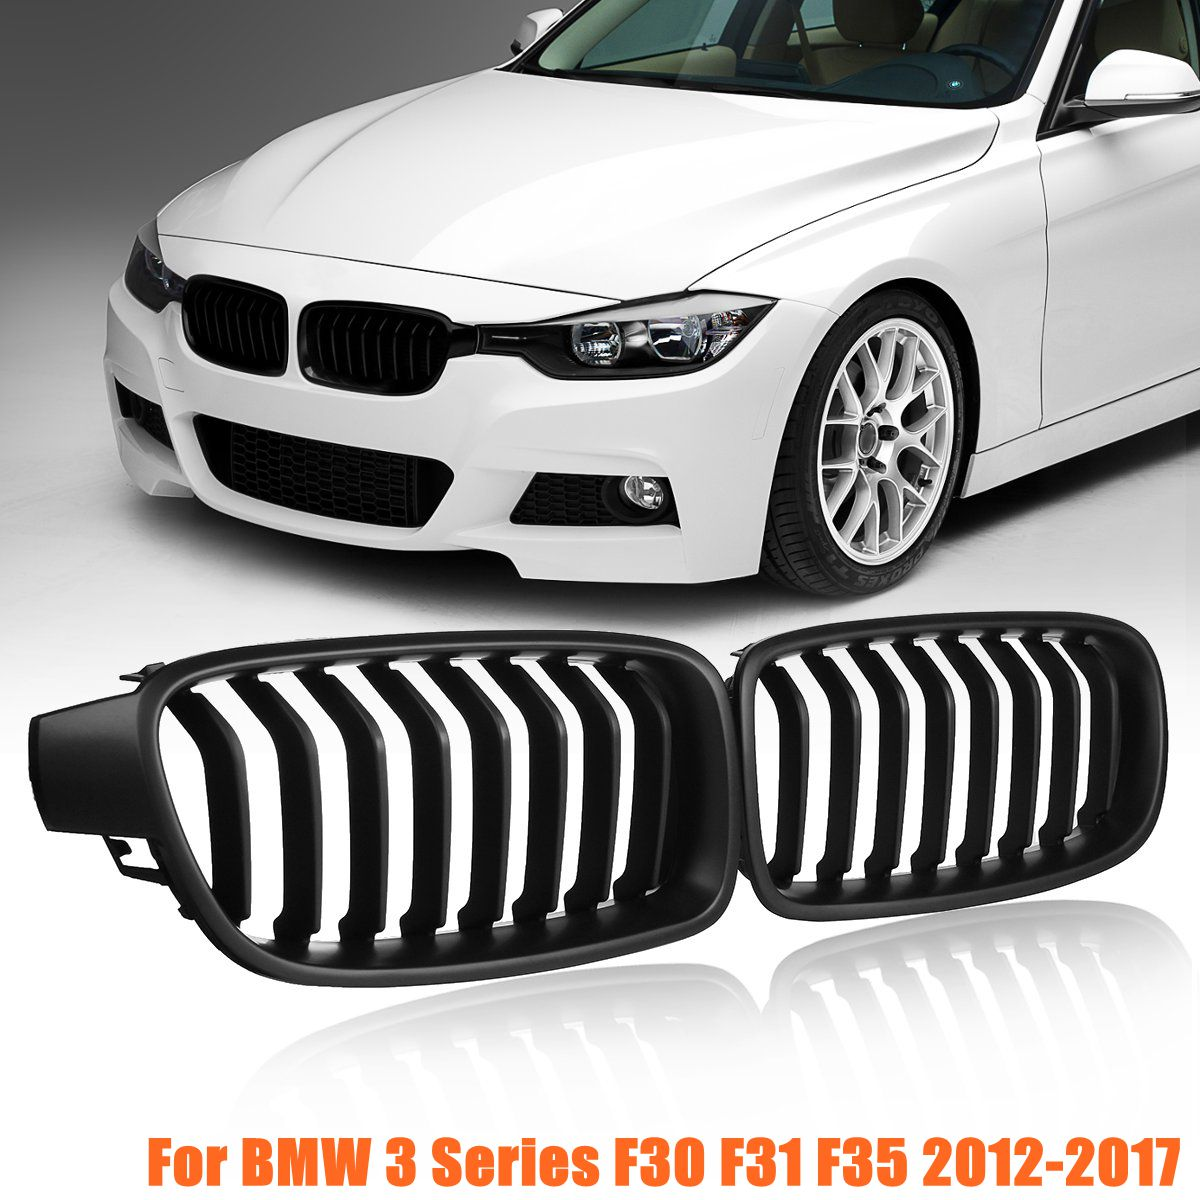 for BMW F30 F31 F35 3 Series 2012 2013 2014 2015 2016 2017 1Pair Front Kidney Grill Grilles Matte Black Car Styling Racing Grillfor BMW F30 F31 F35 3 Series 2012 2013 2014 2015 2016 2017 1Pair Front Kidney Grill Grilles Matte Black Car Styling Racing Grill